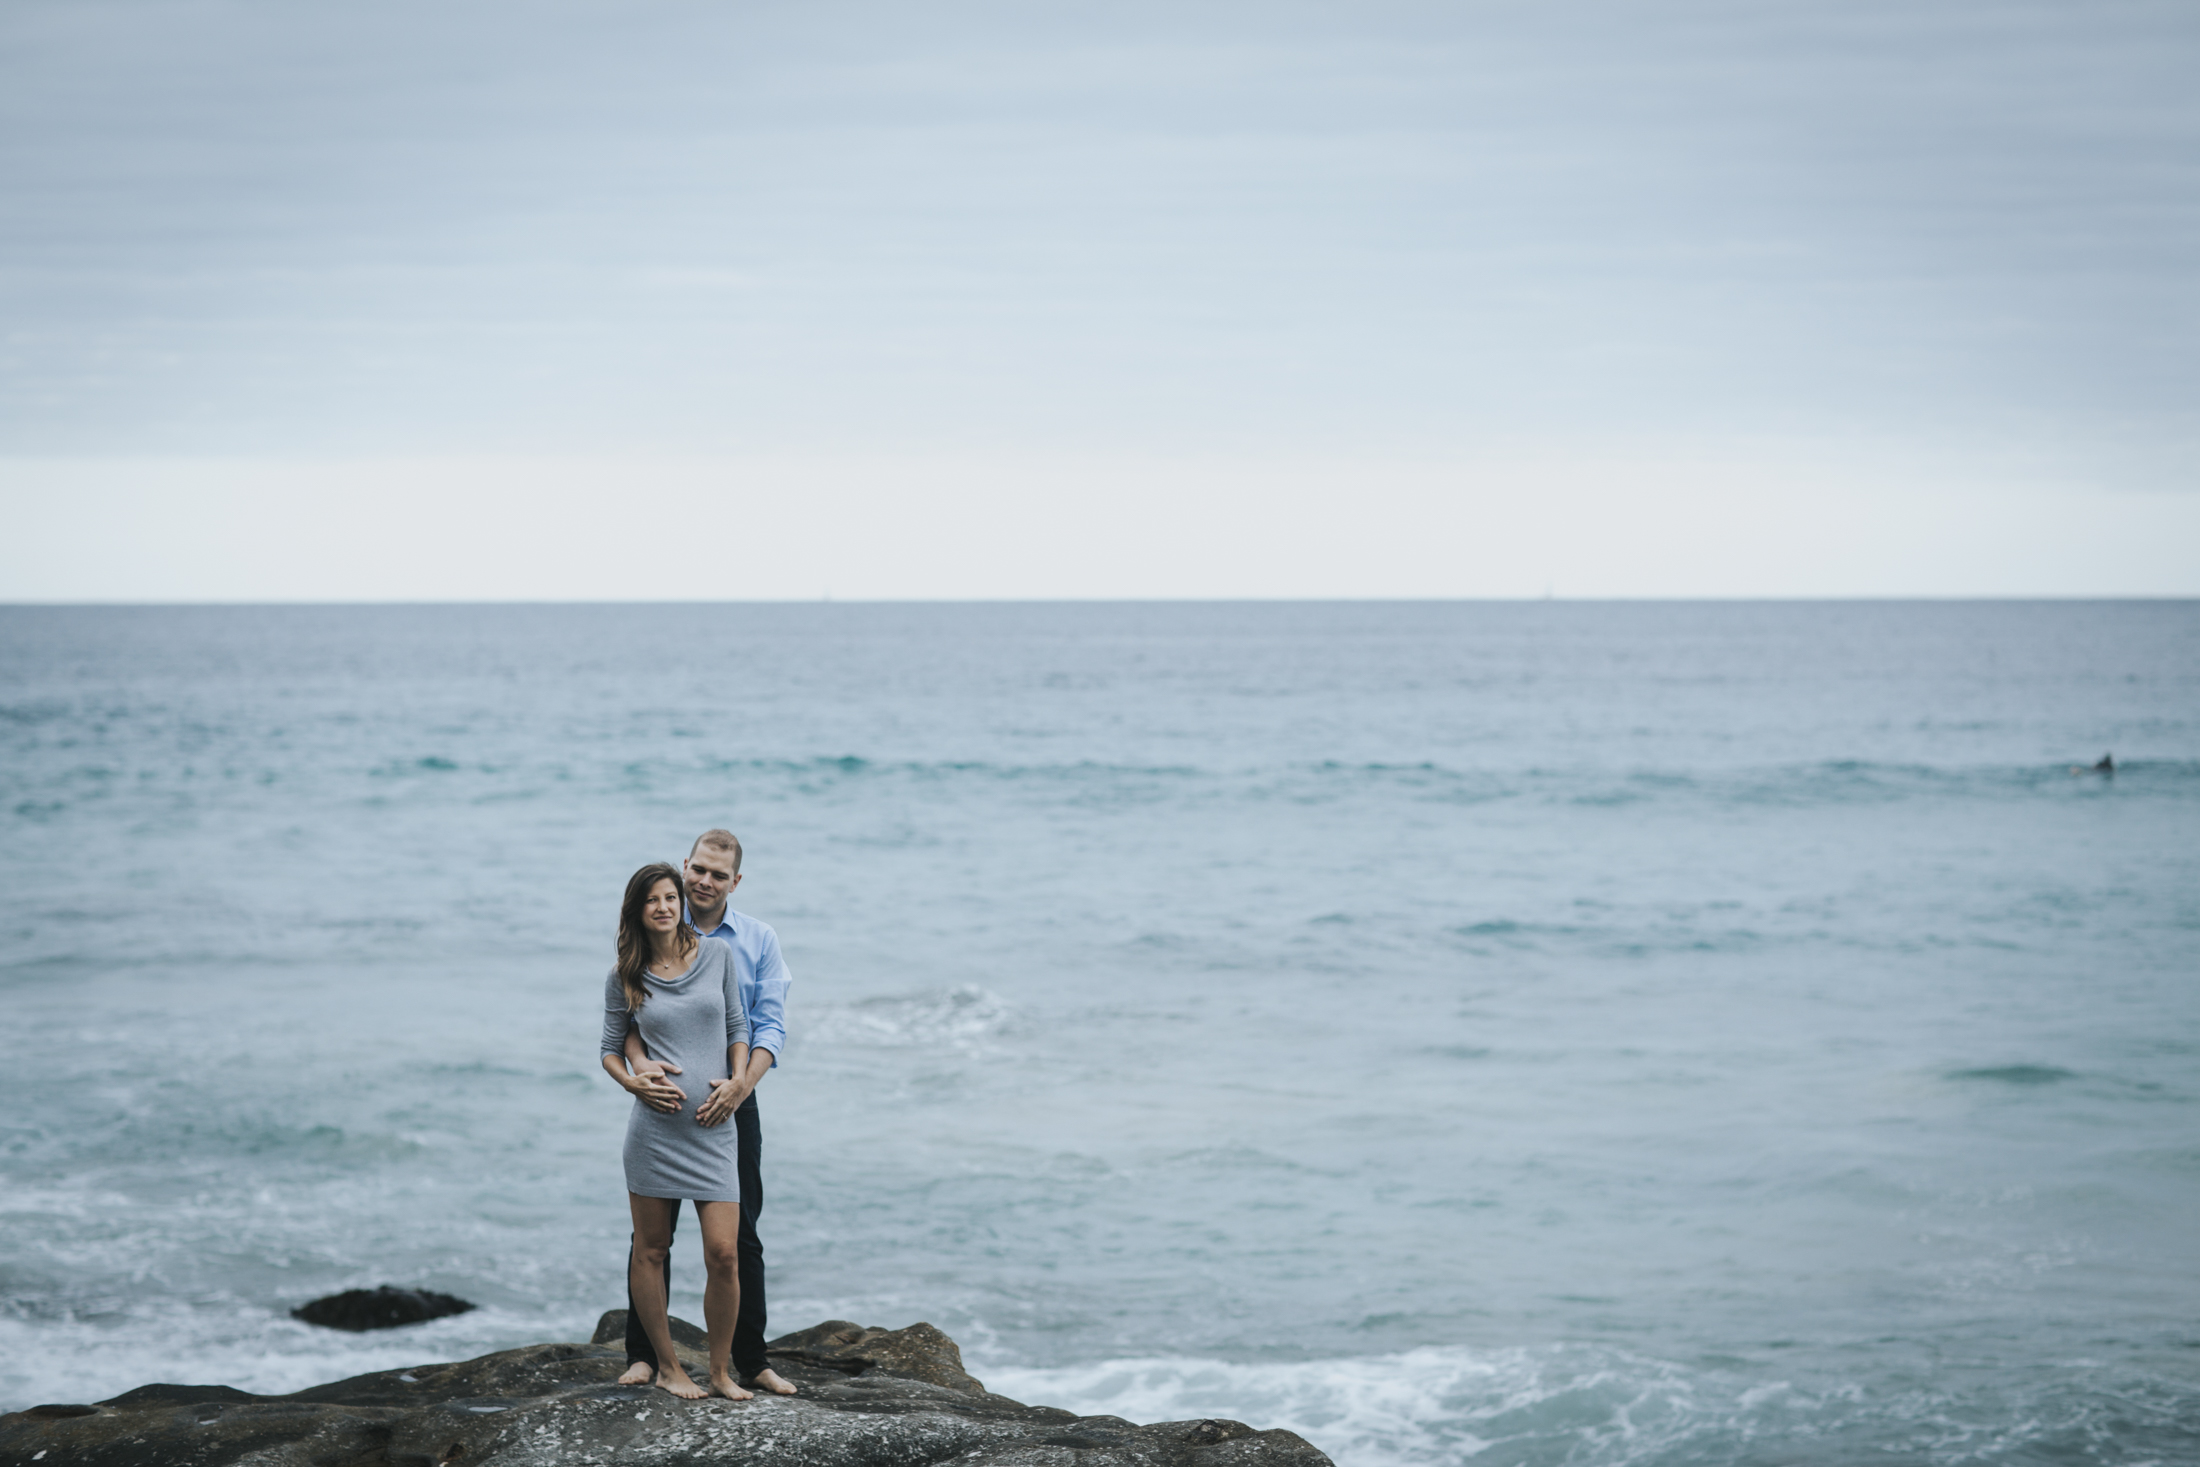 sheridan_nilsson_northern_beaches_family_photographer_maternity.-2117.jpg